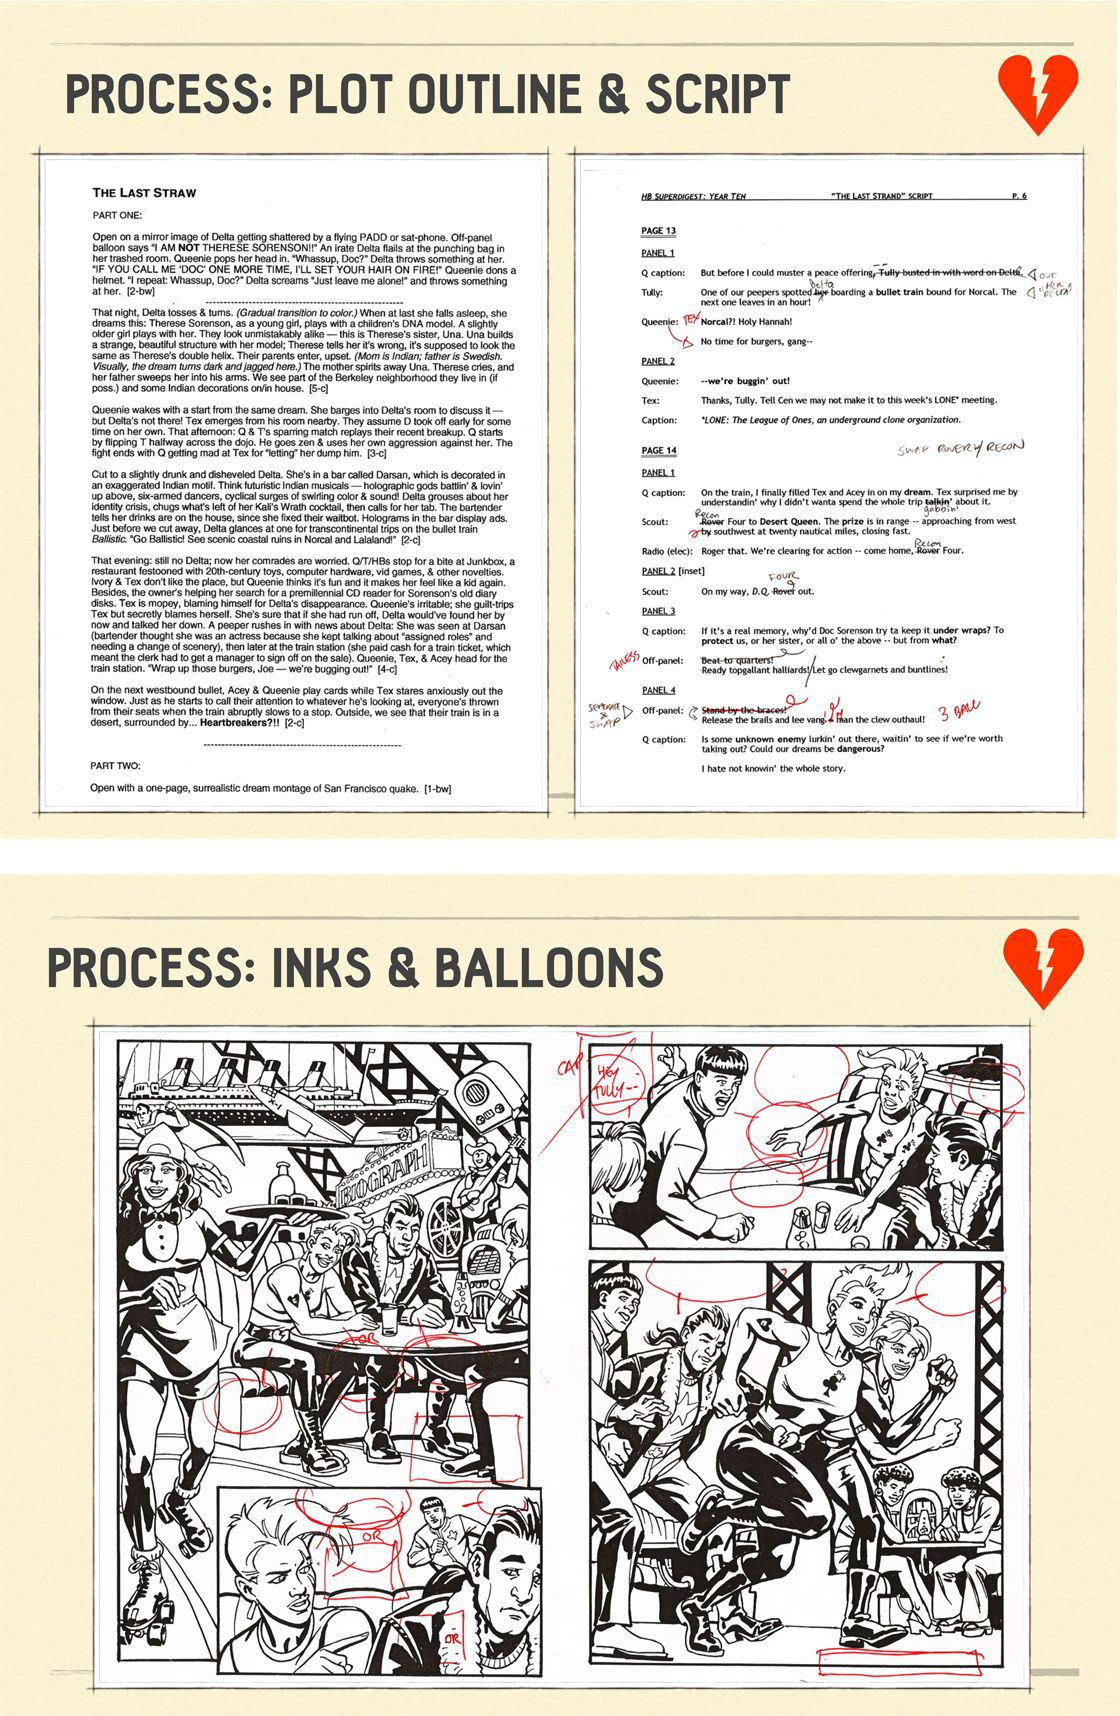 001 Marvelou Comic Book Script Writing Format Concept  ExampleFull